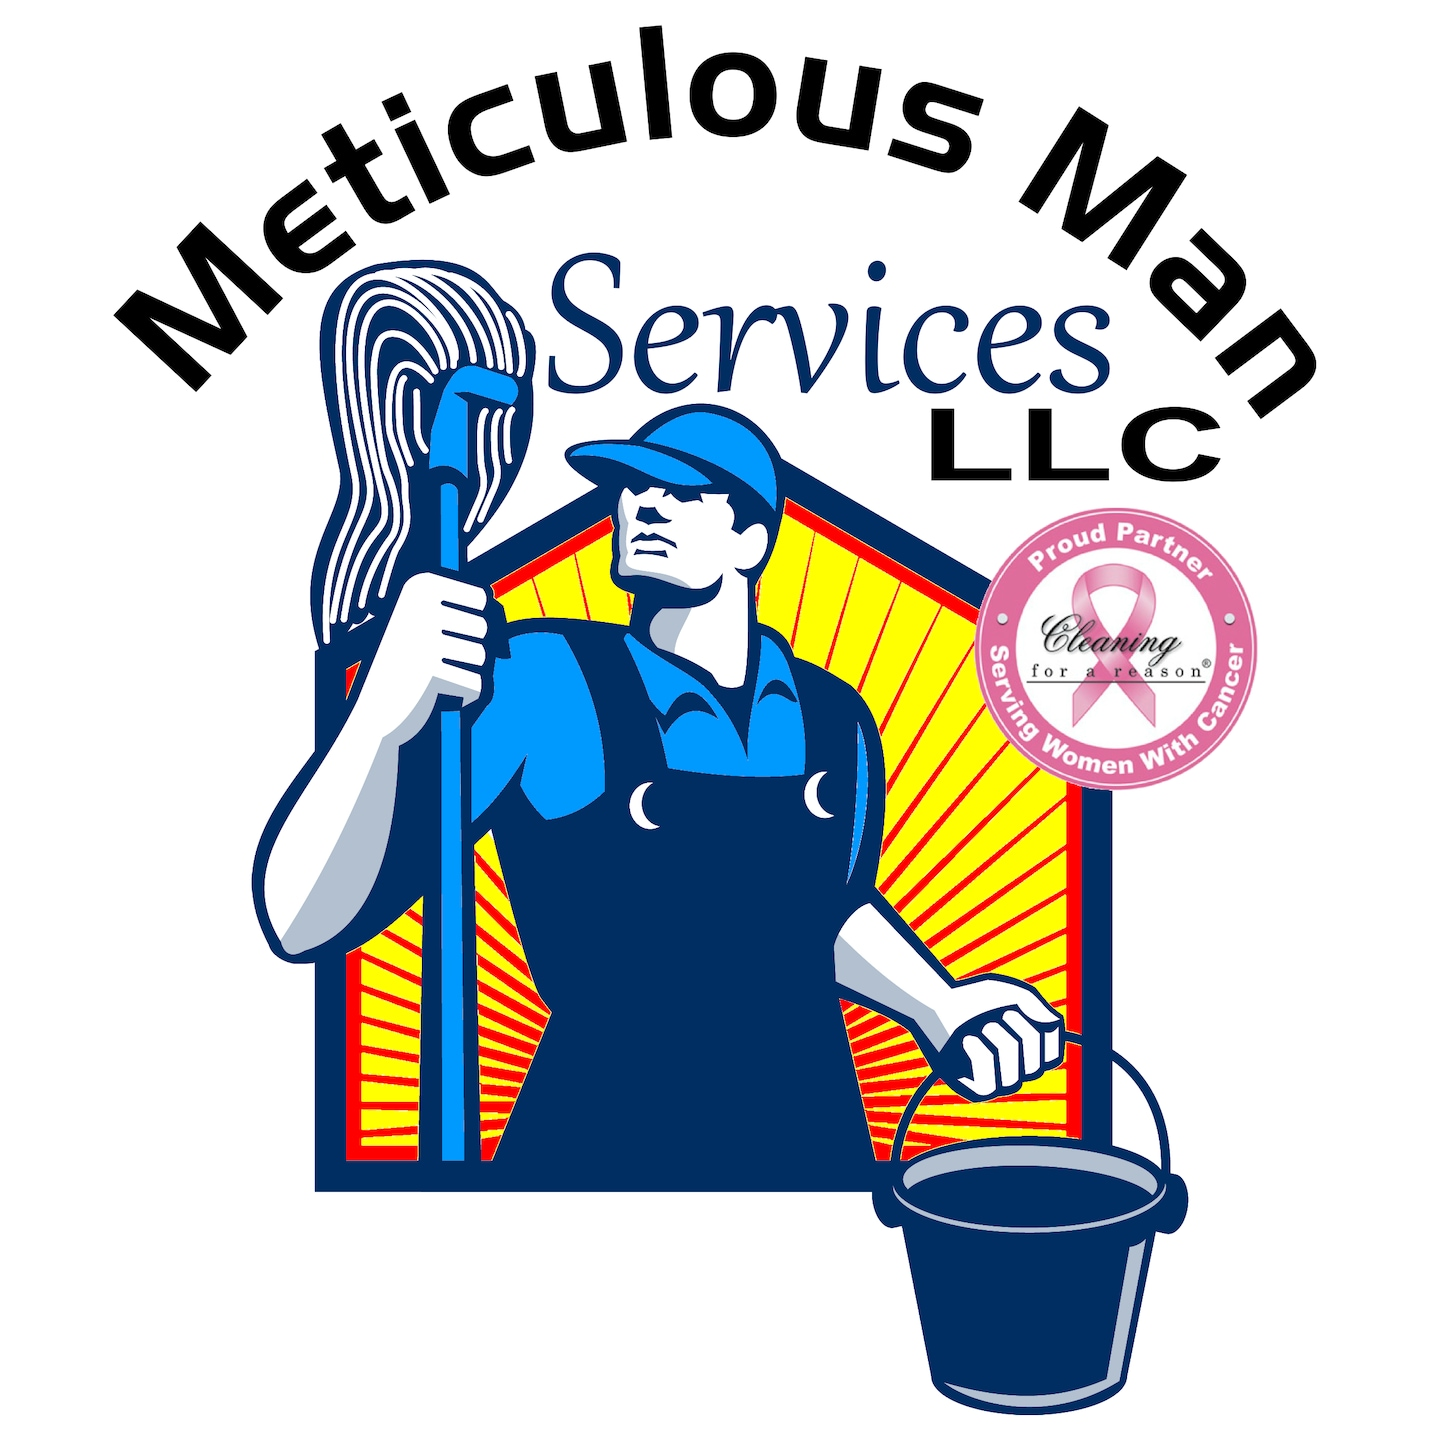 Meticulous Man Services LLC